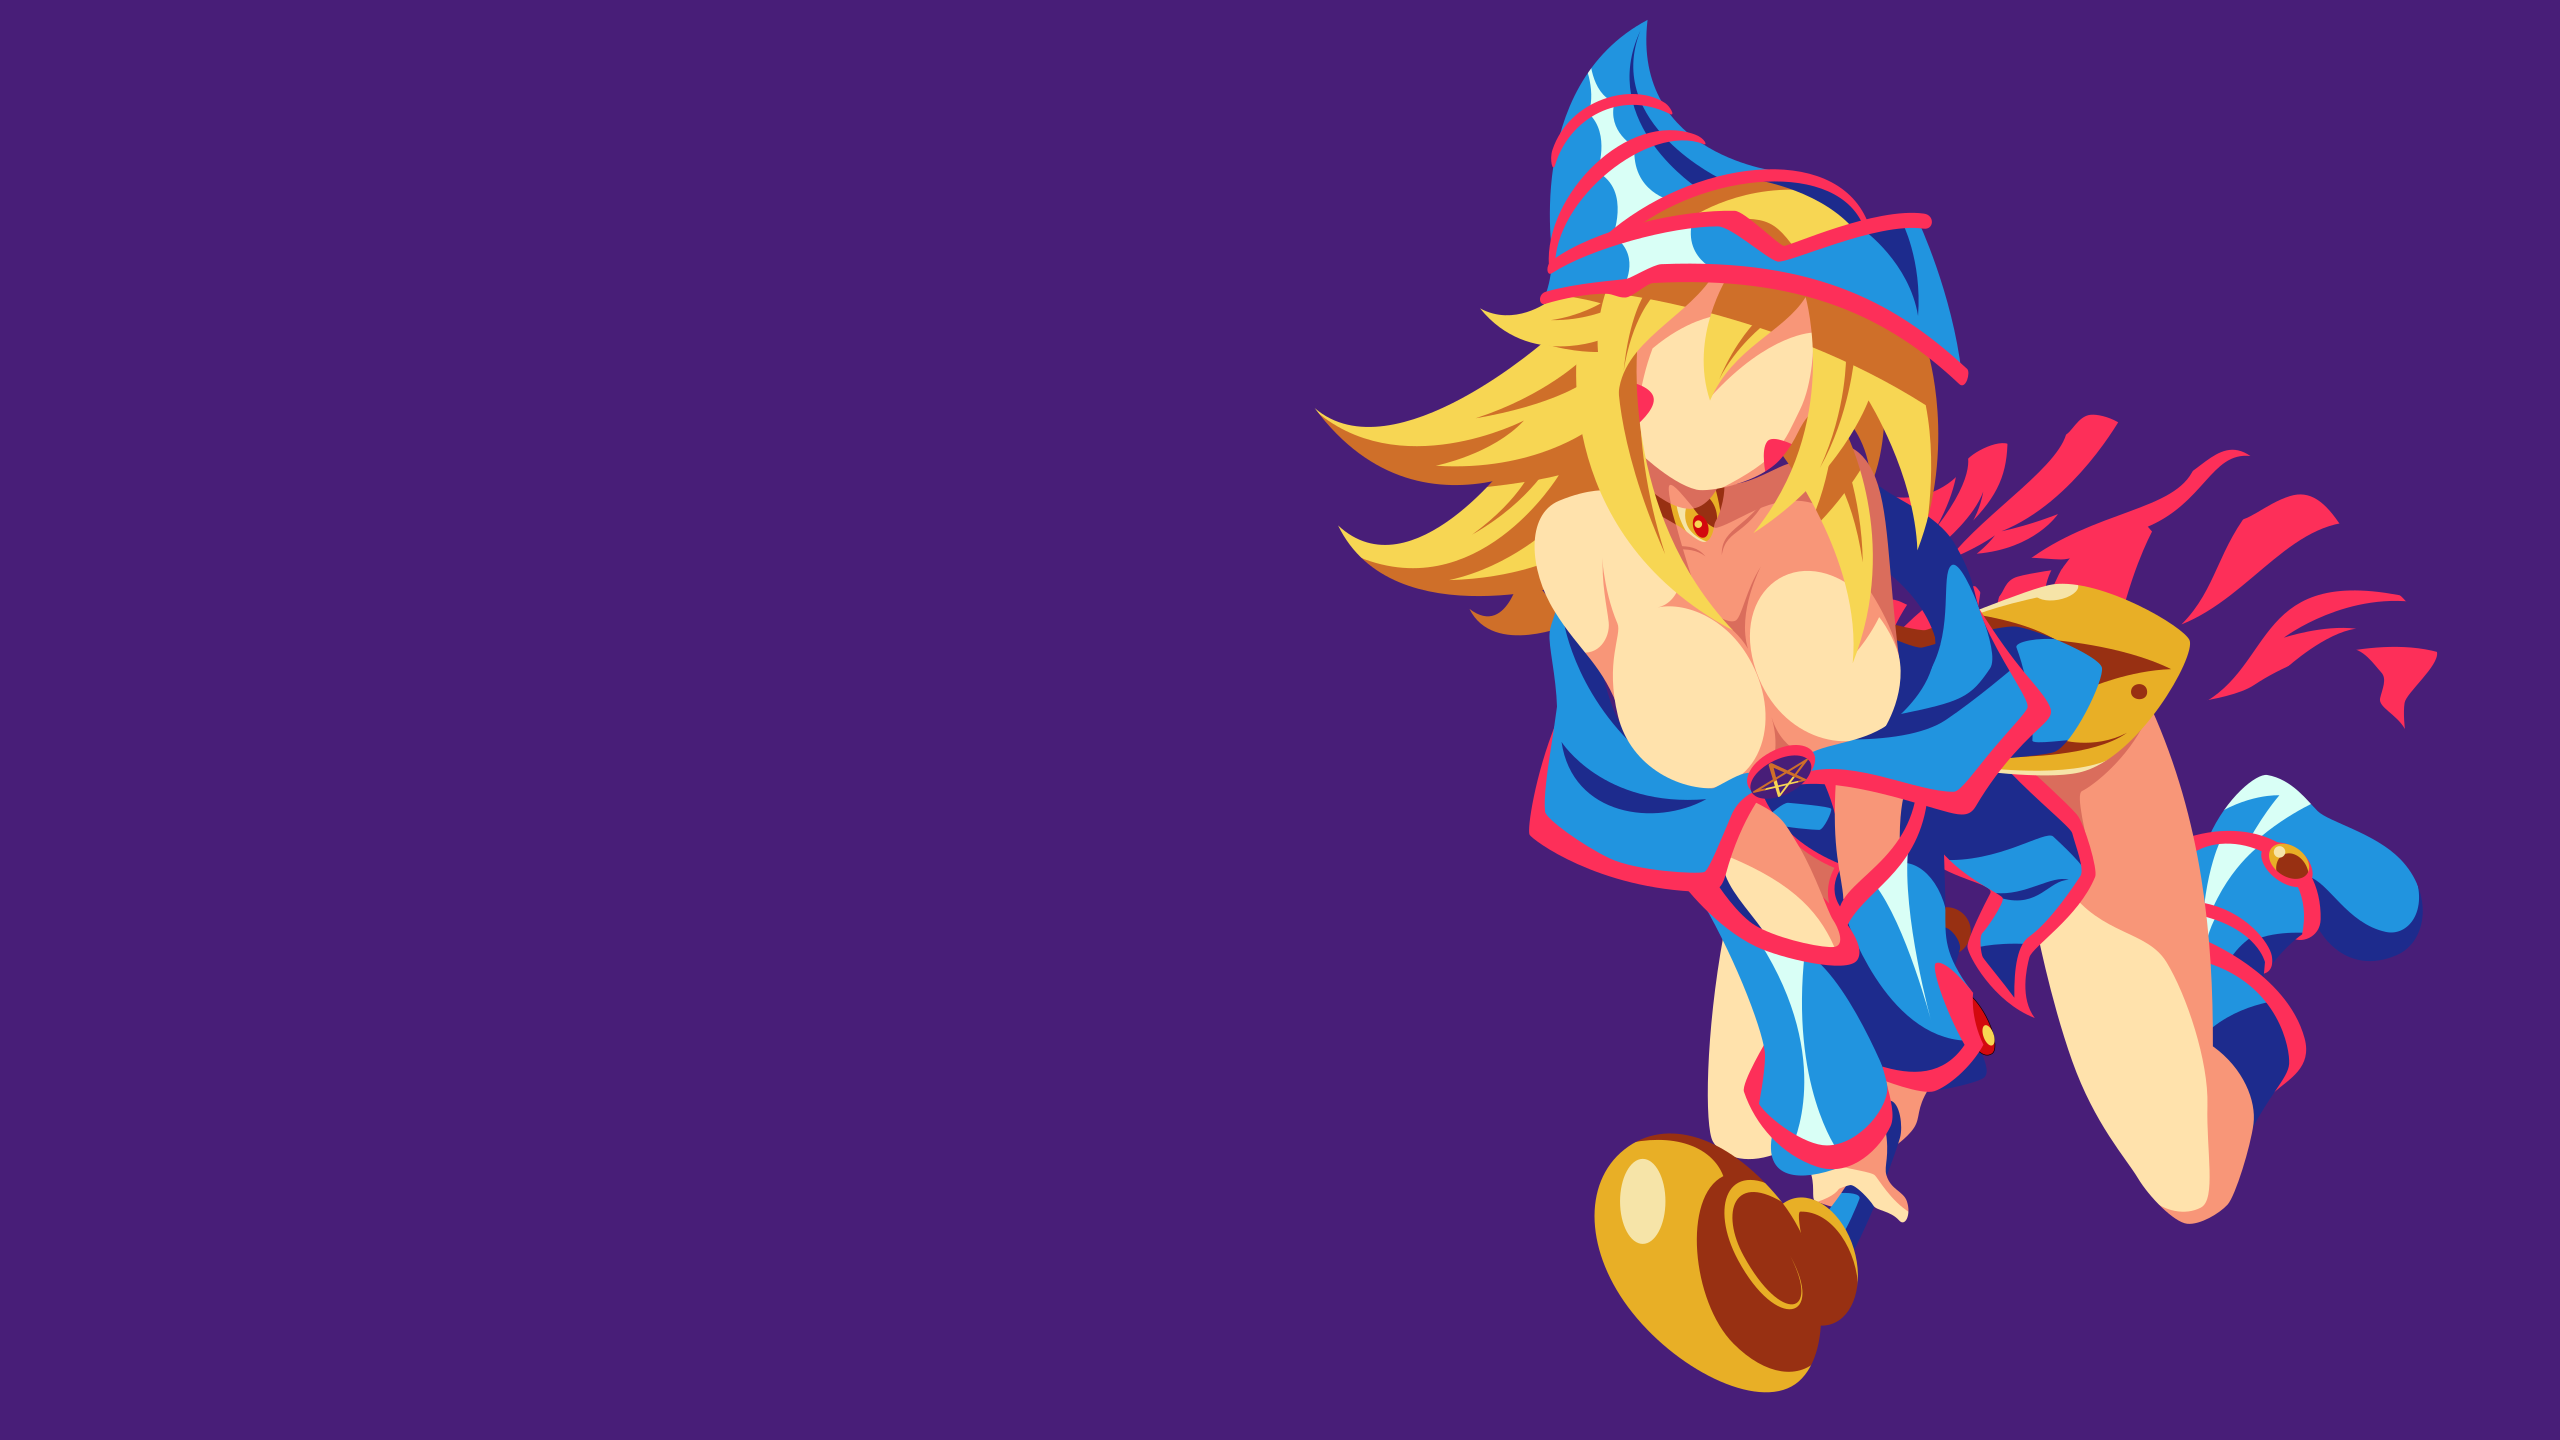 Yugioh dark magician girl minimalism wallpaper by for Deviantart minimal wallpaper